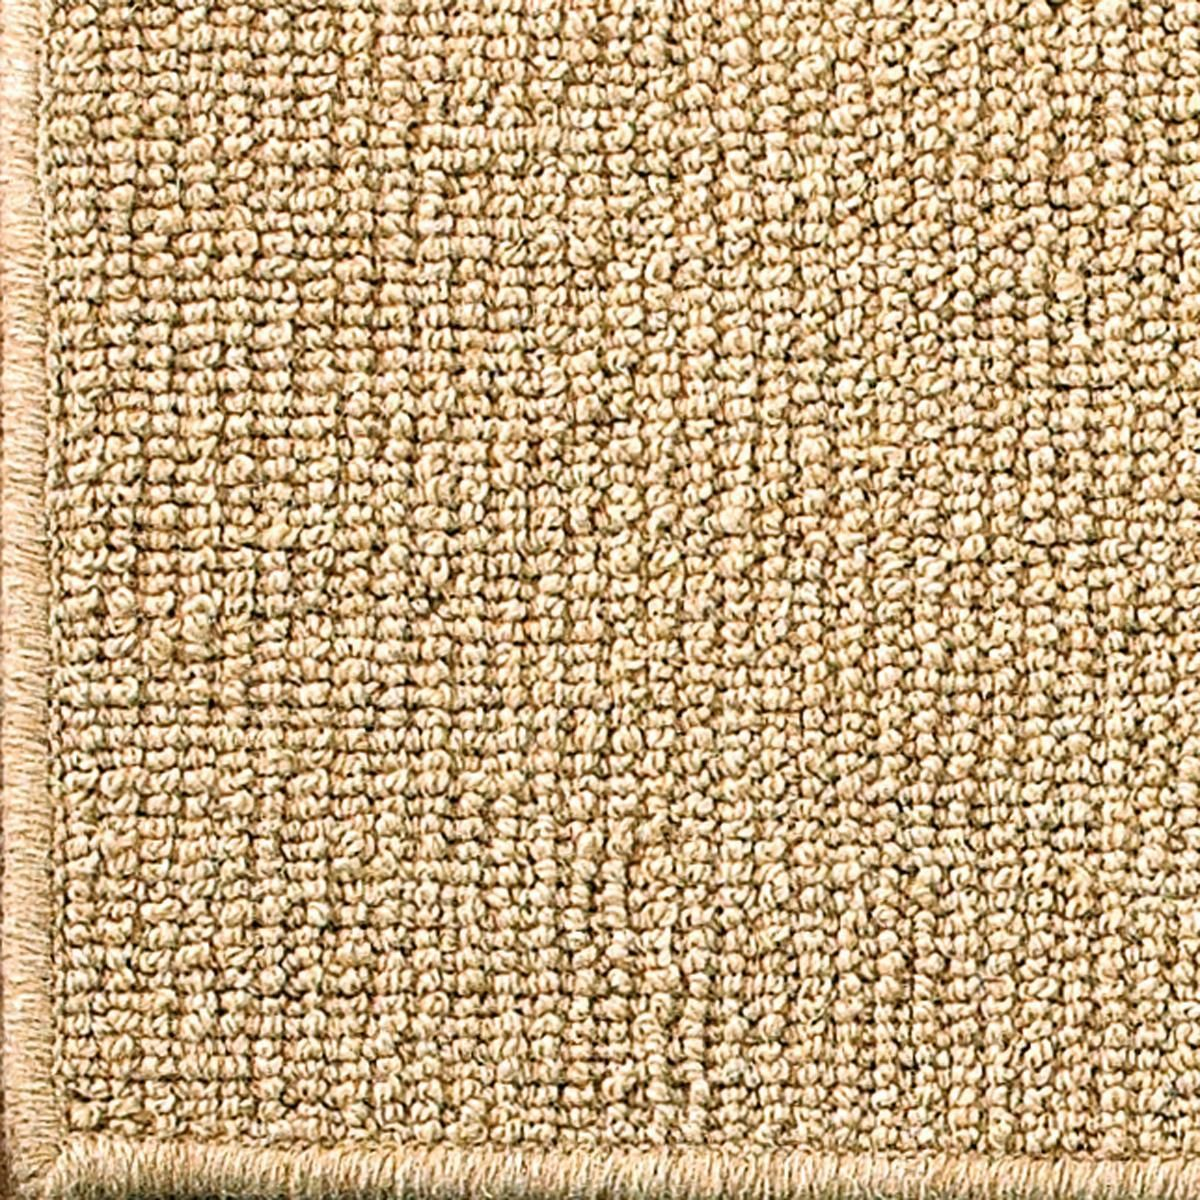 Wool Sisal W Serged Binding Rug In Natural 8 Square 528